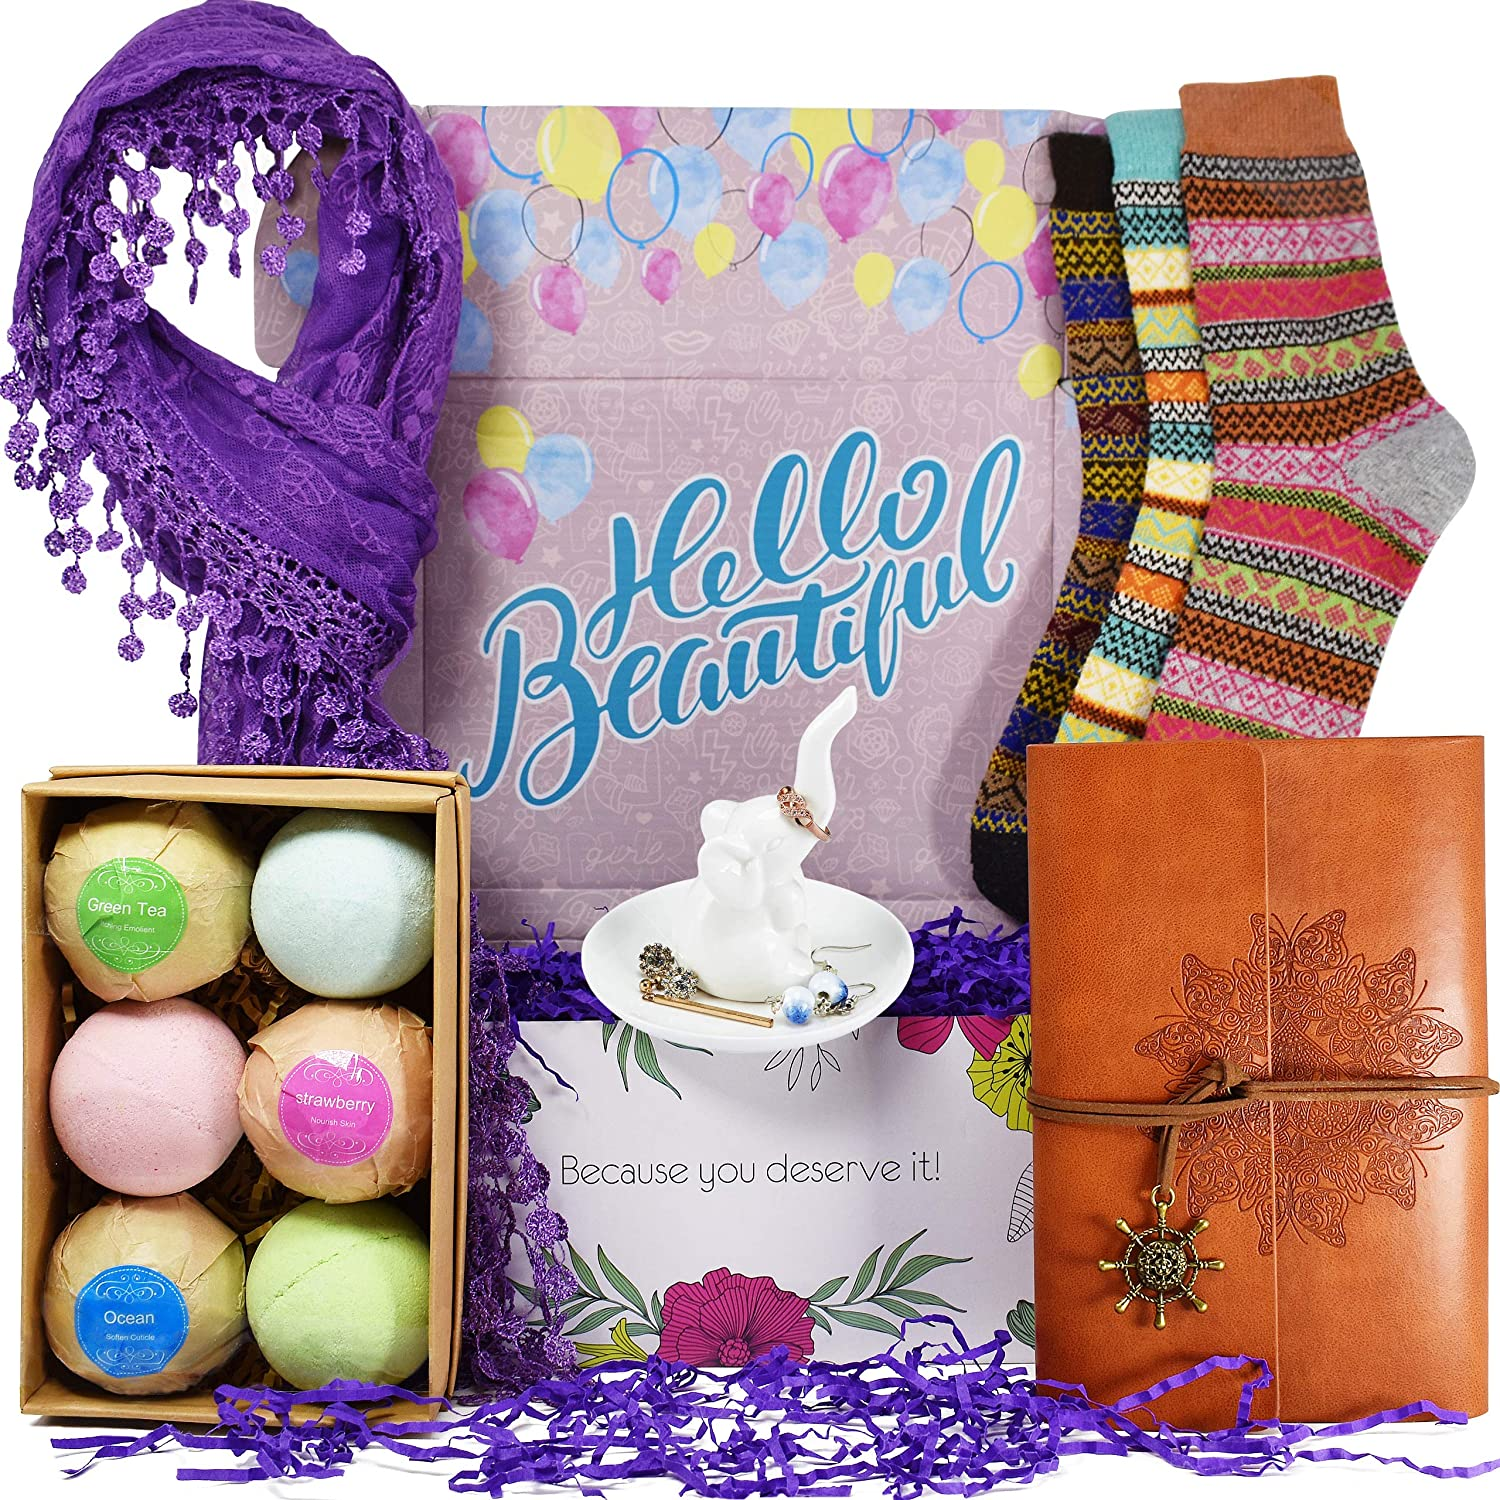 Birthday Gift Baskets for Women - Includes Journal for Women, Ring Holders for Jewelry, Bubble Bath for Women